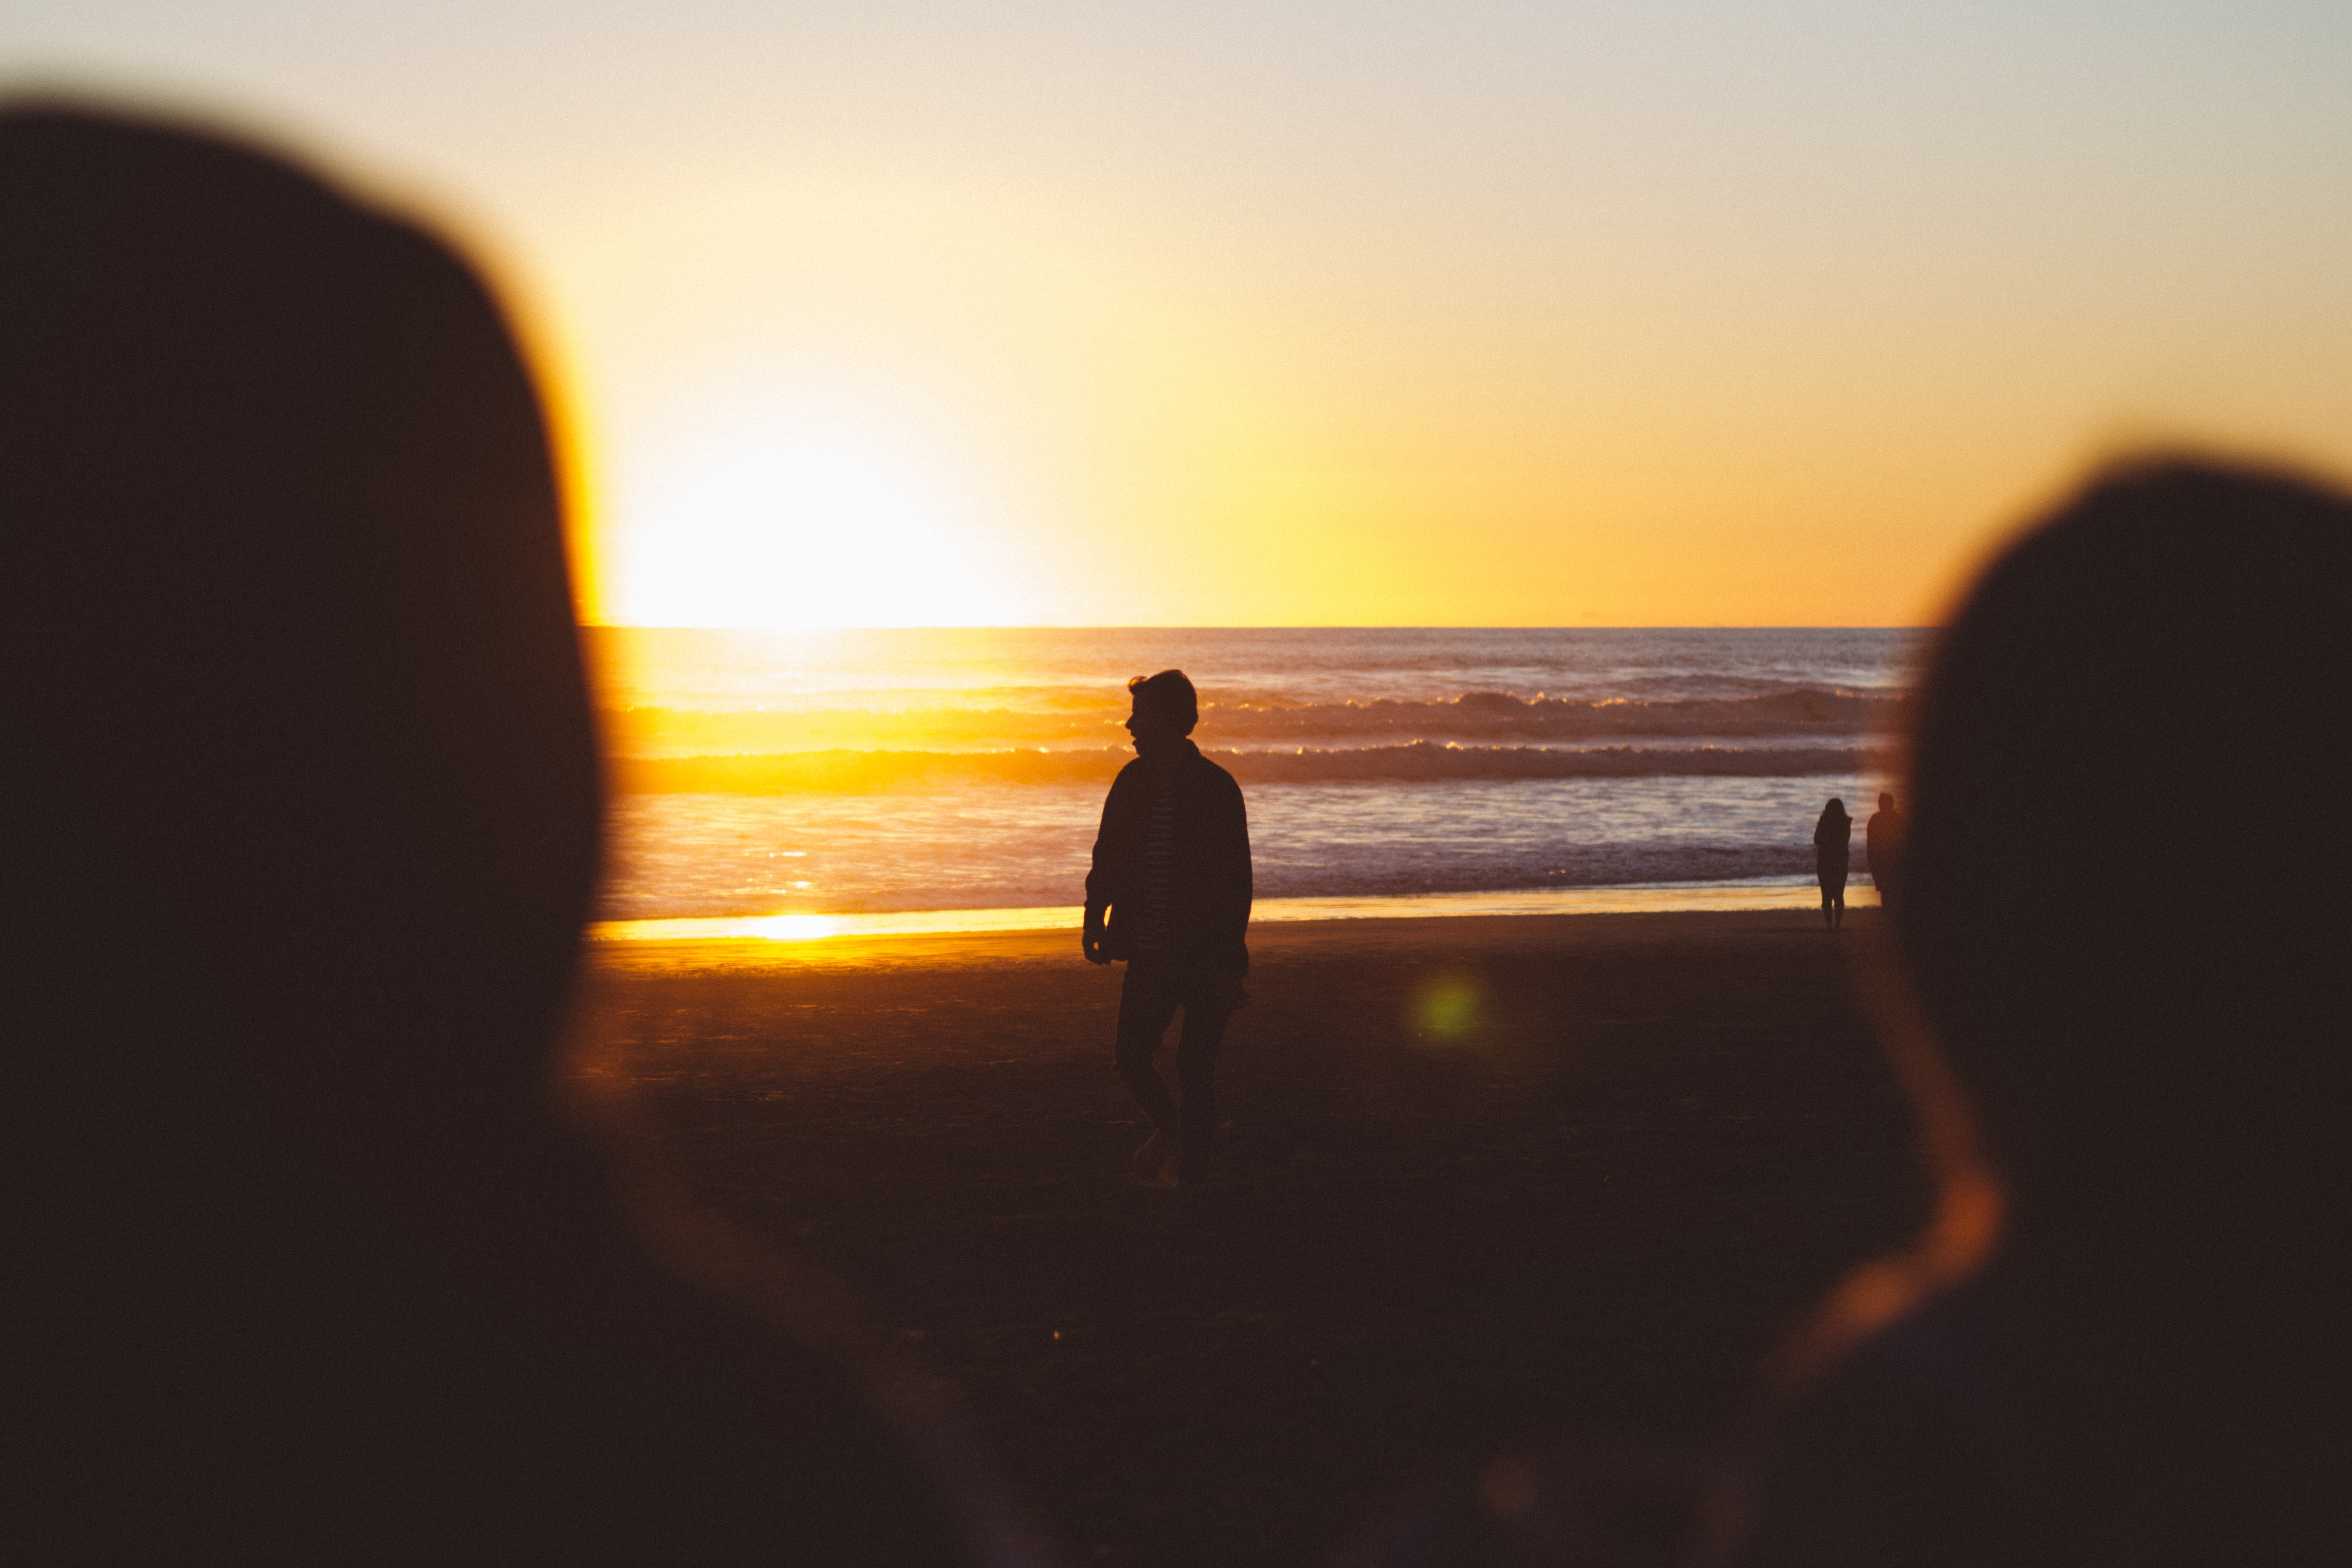 Silhouette of a person on the beach, sun setting on the horizon, seen over shoulders of two blurred people in the foreground